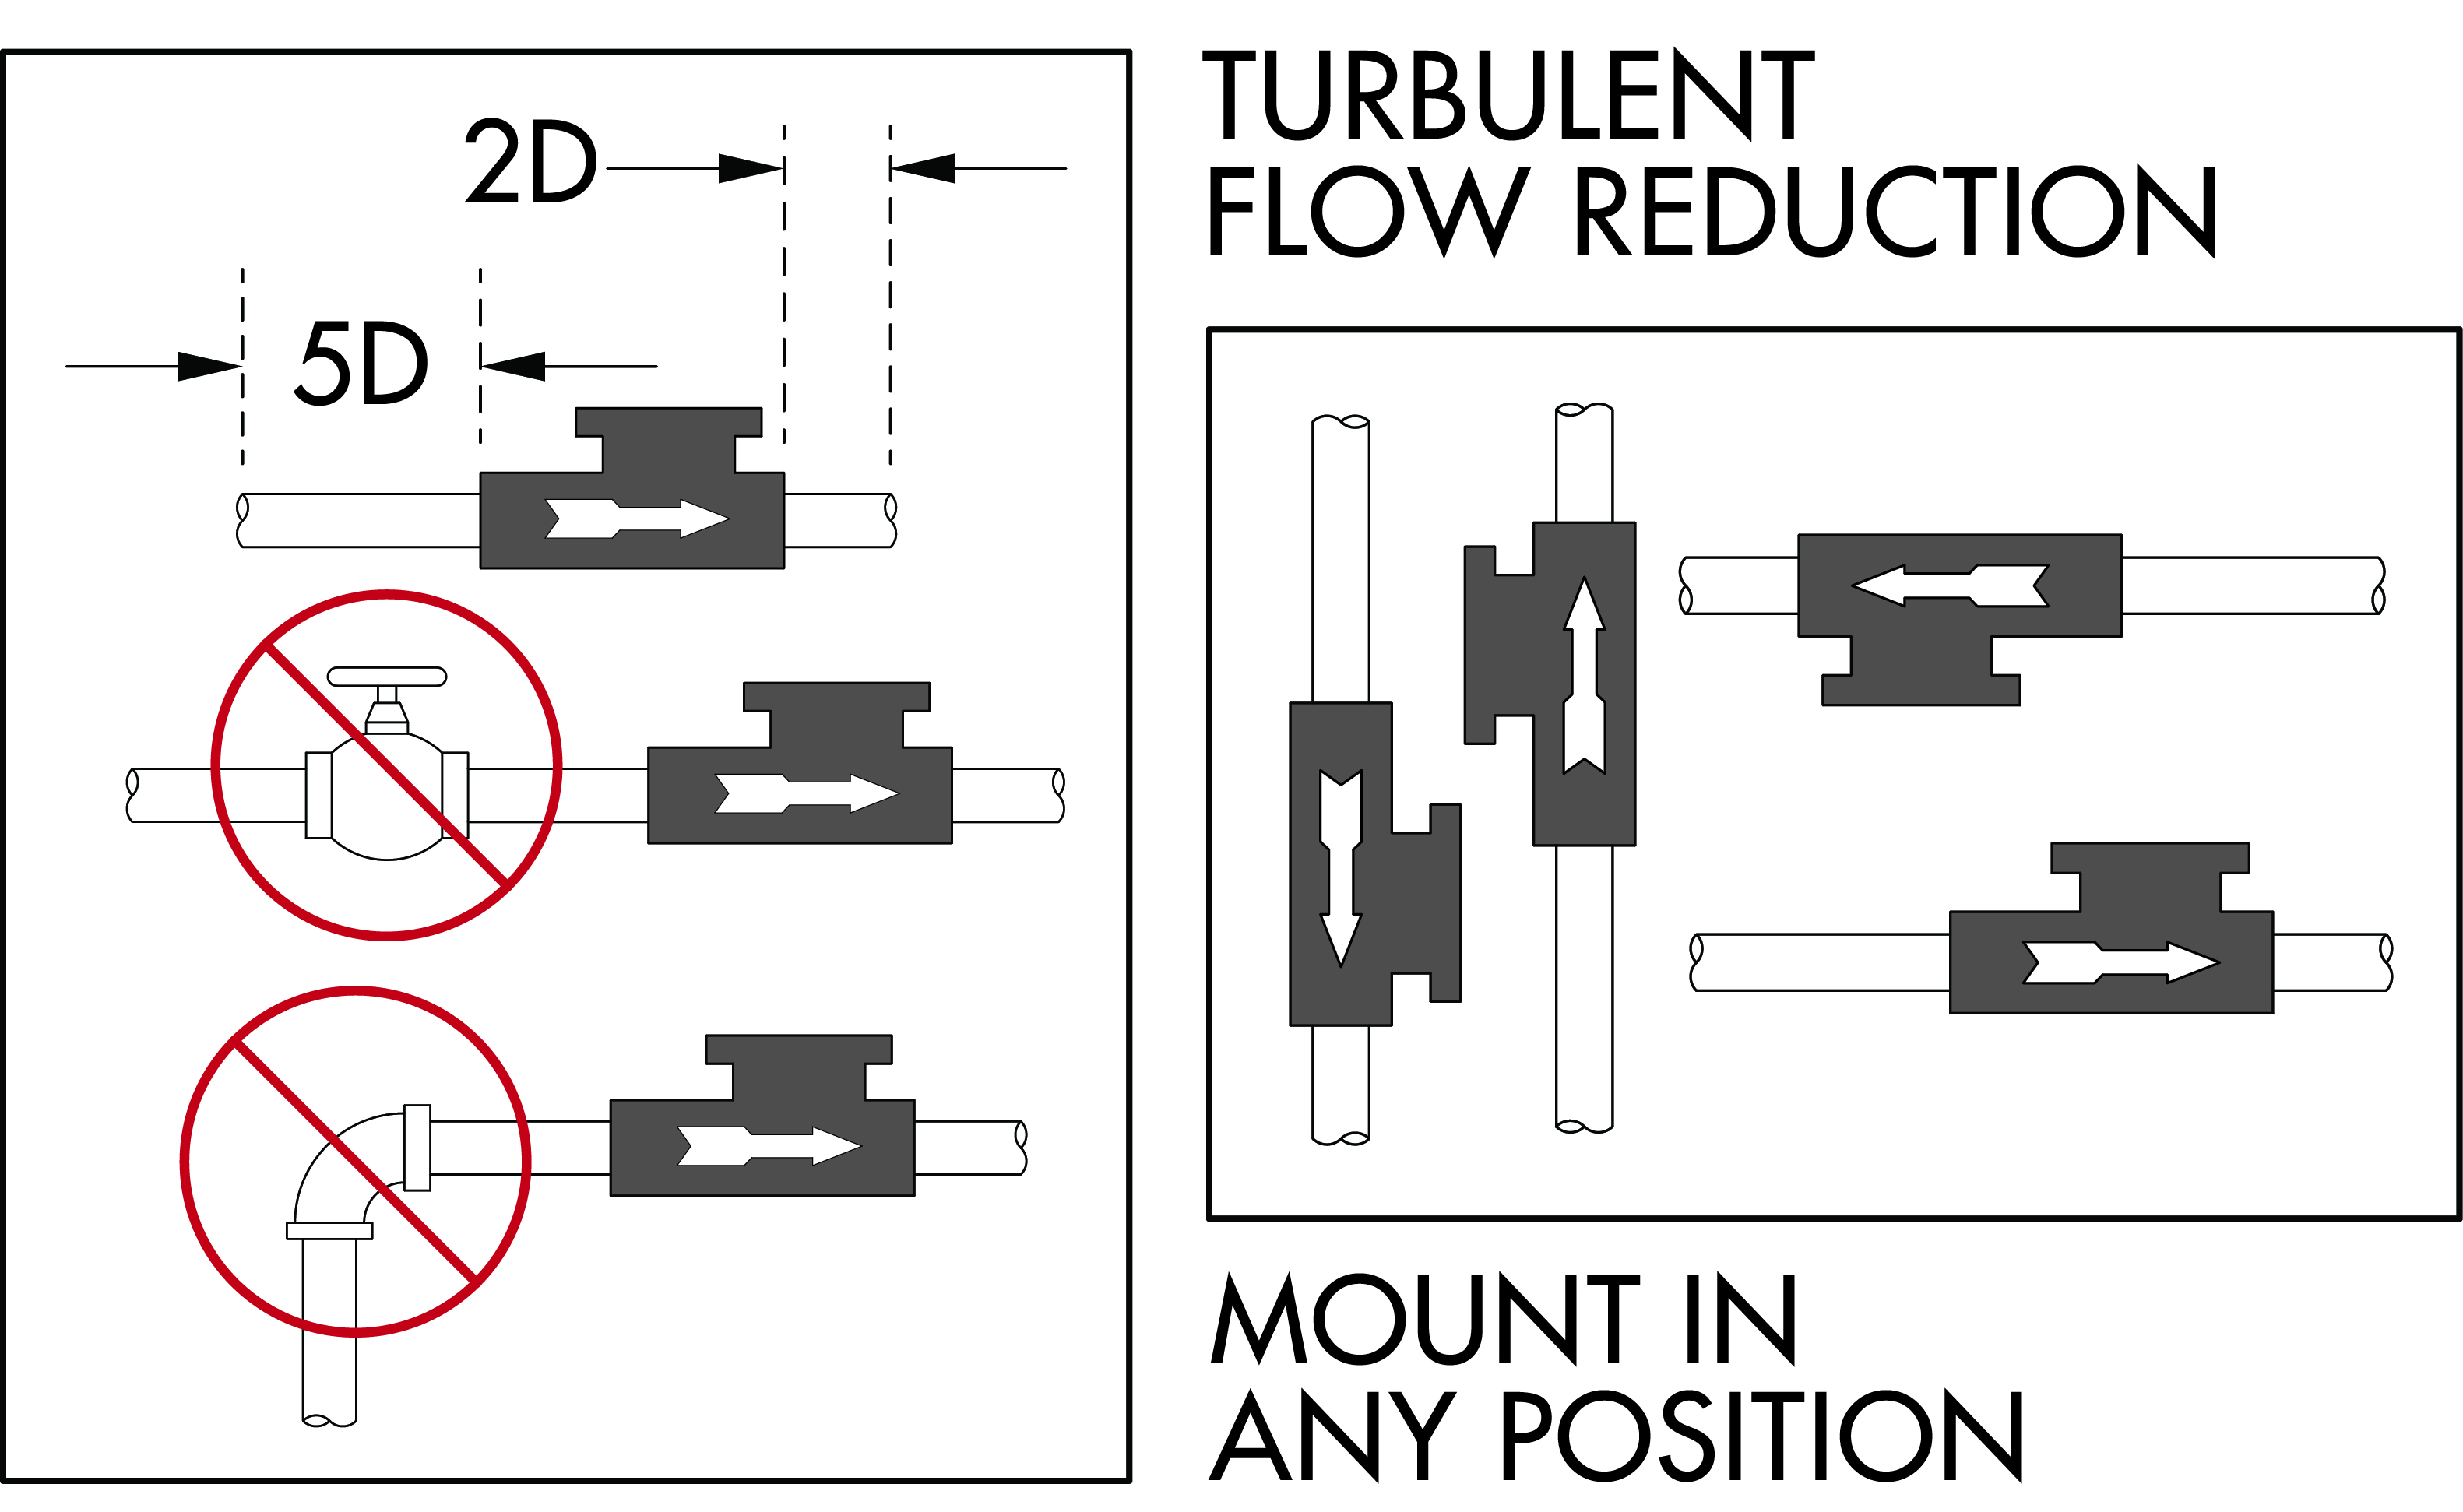 turbulent-flow-reduction